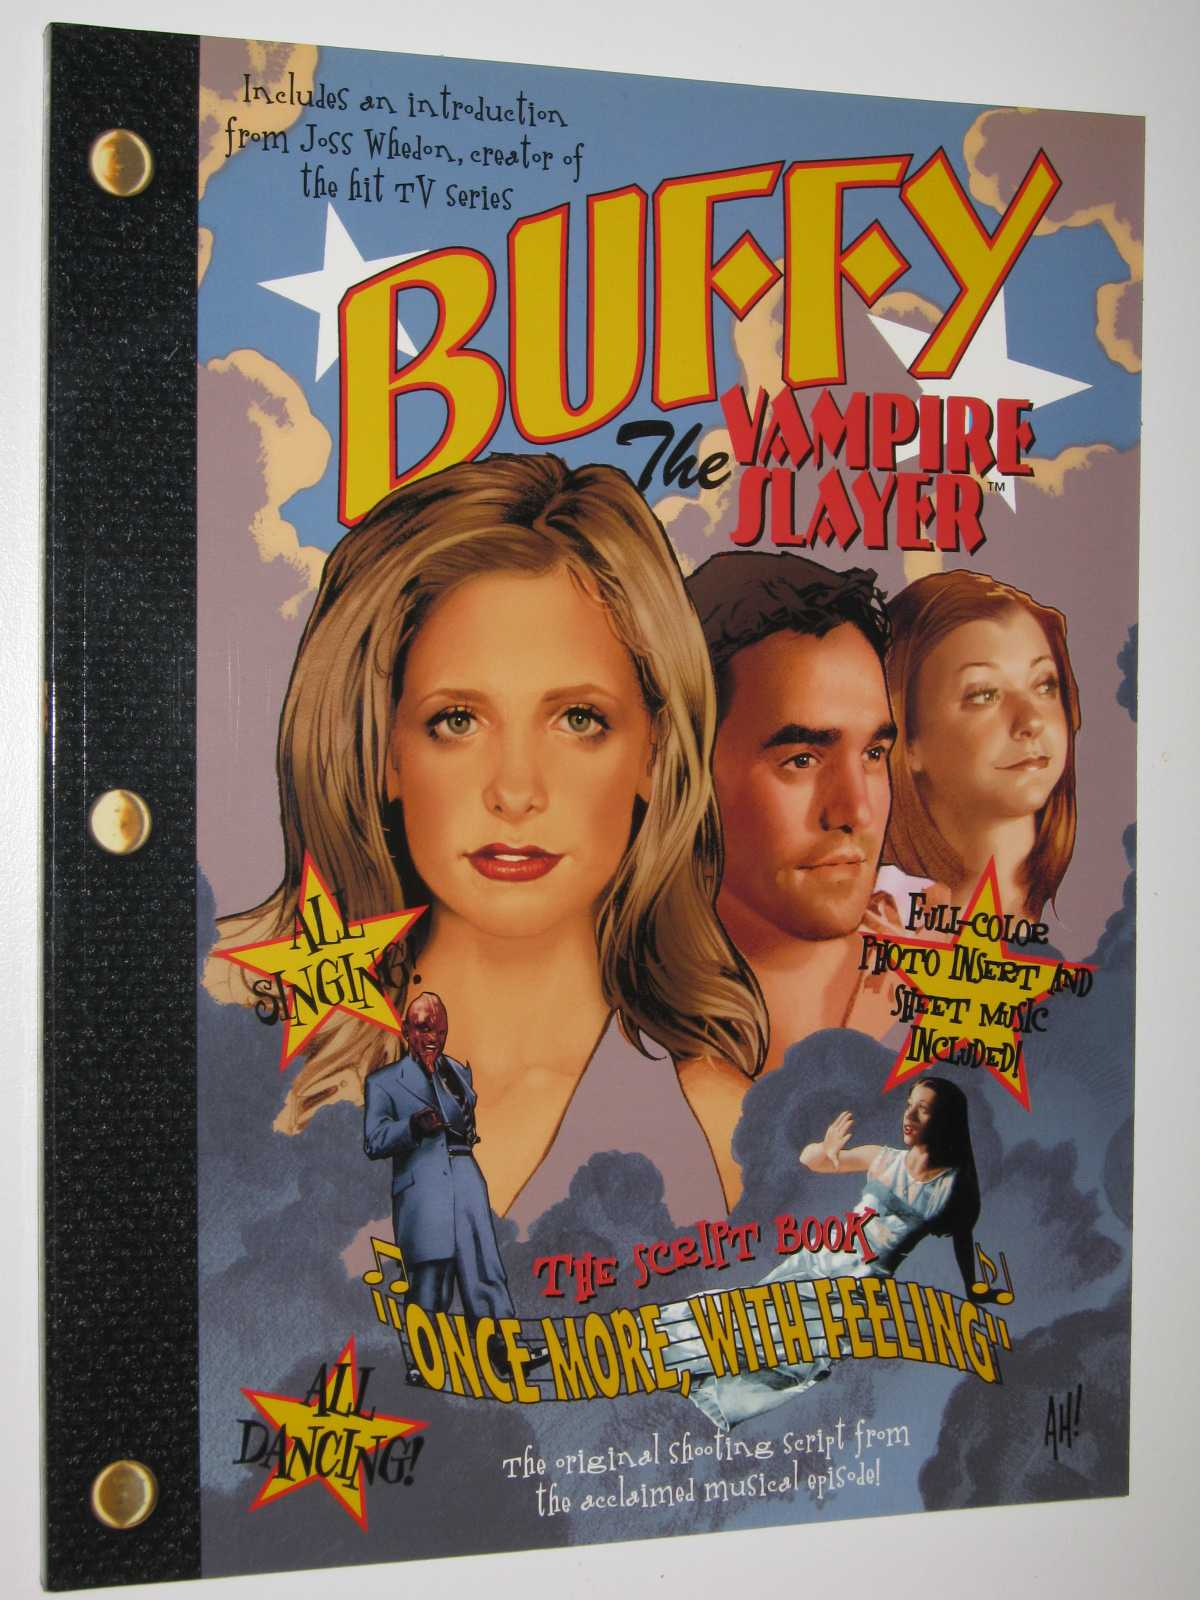 Once More With Feeling - Buffy the Vampire Slayer Series, Author Not Stated